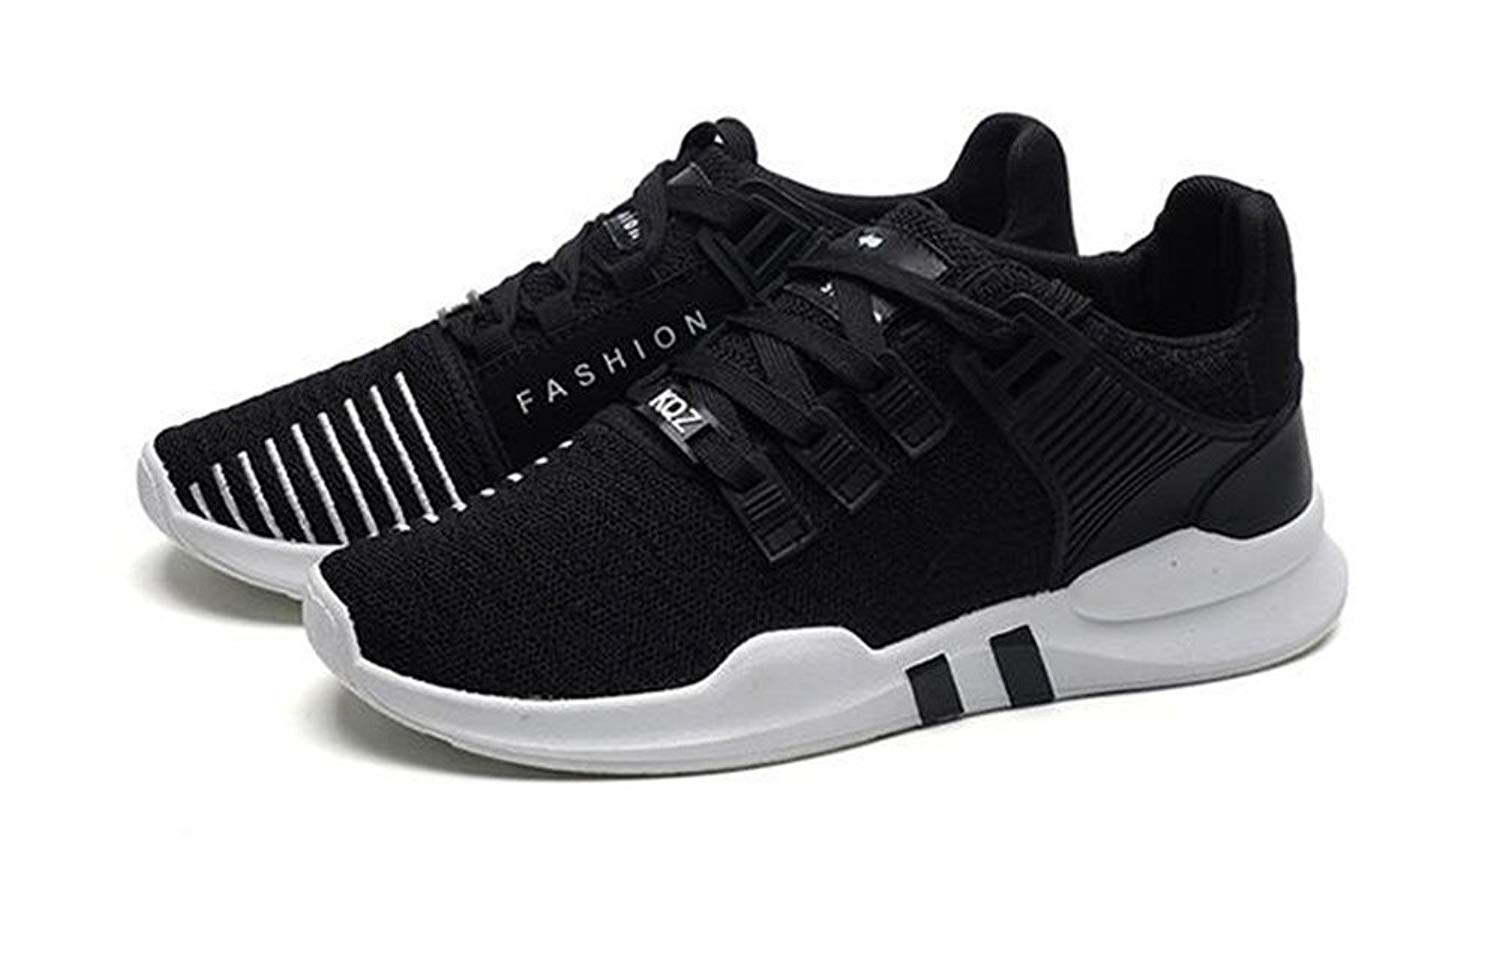 MOREMOO Sports Shoes Men Running Shoes Sports Shoes Men's Autumn Sports Shoes Sports Shoes Running Shoes Sports Men